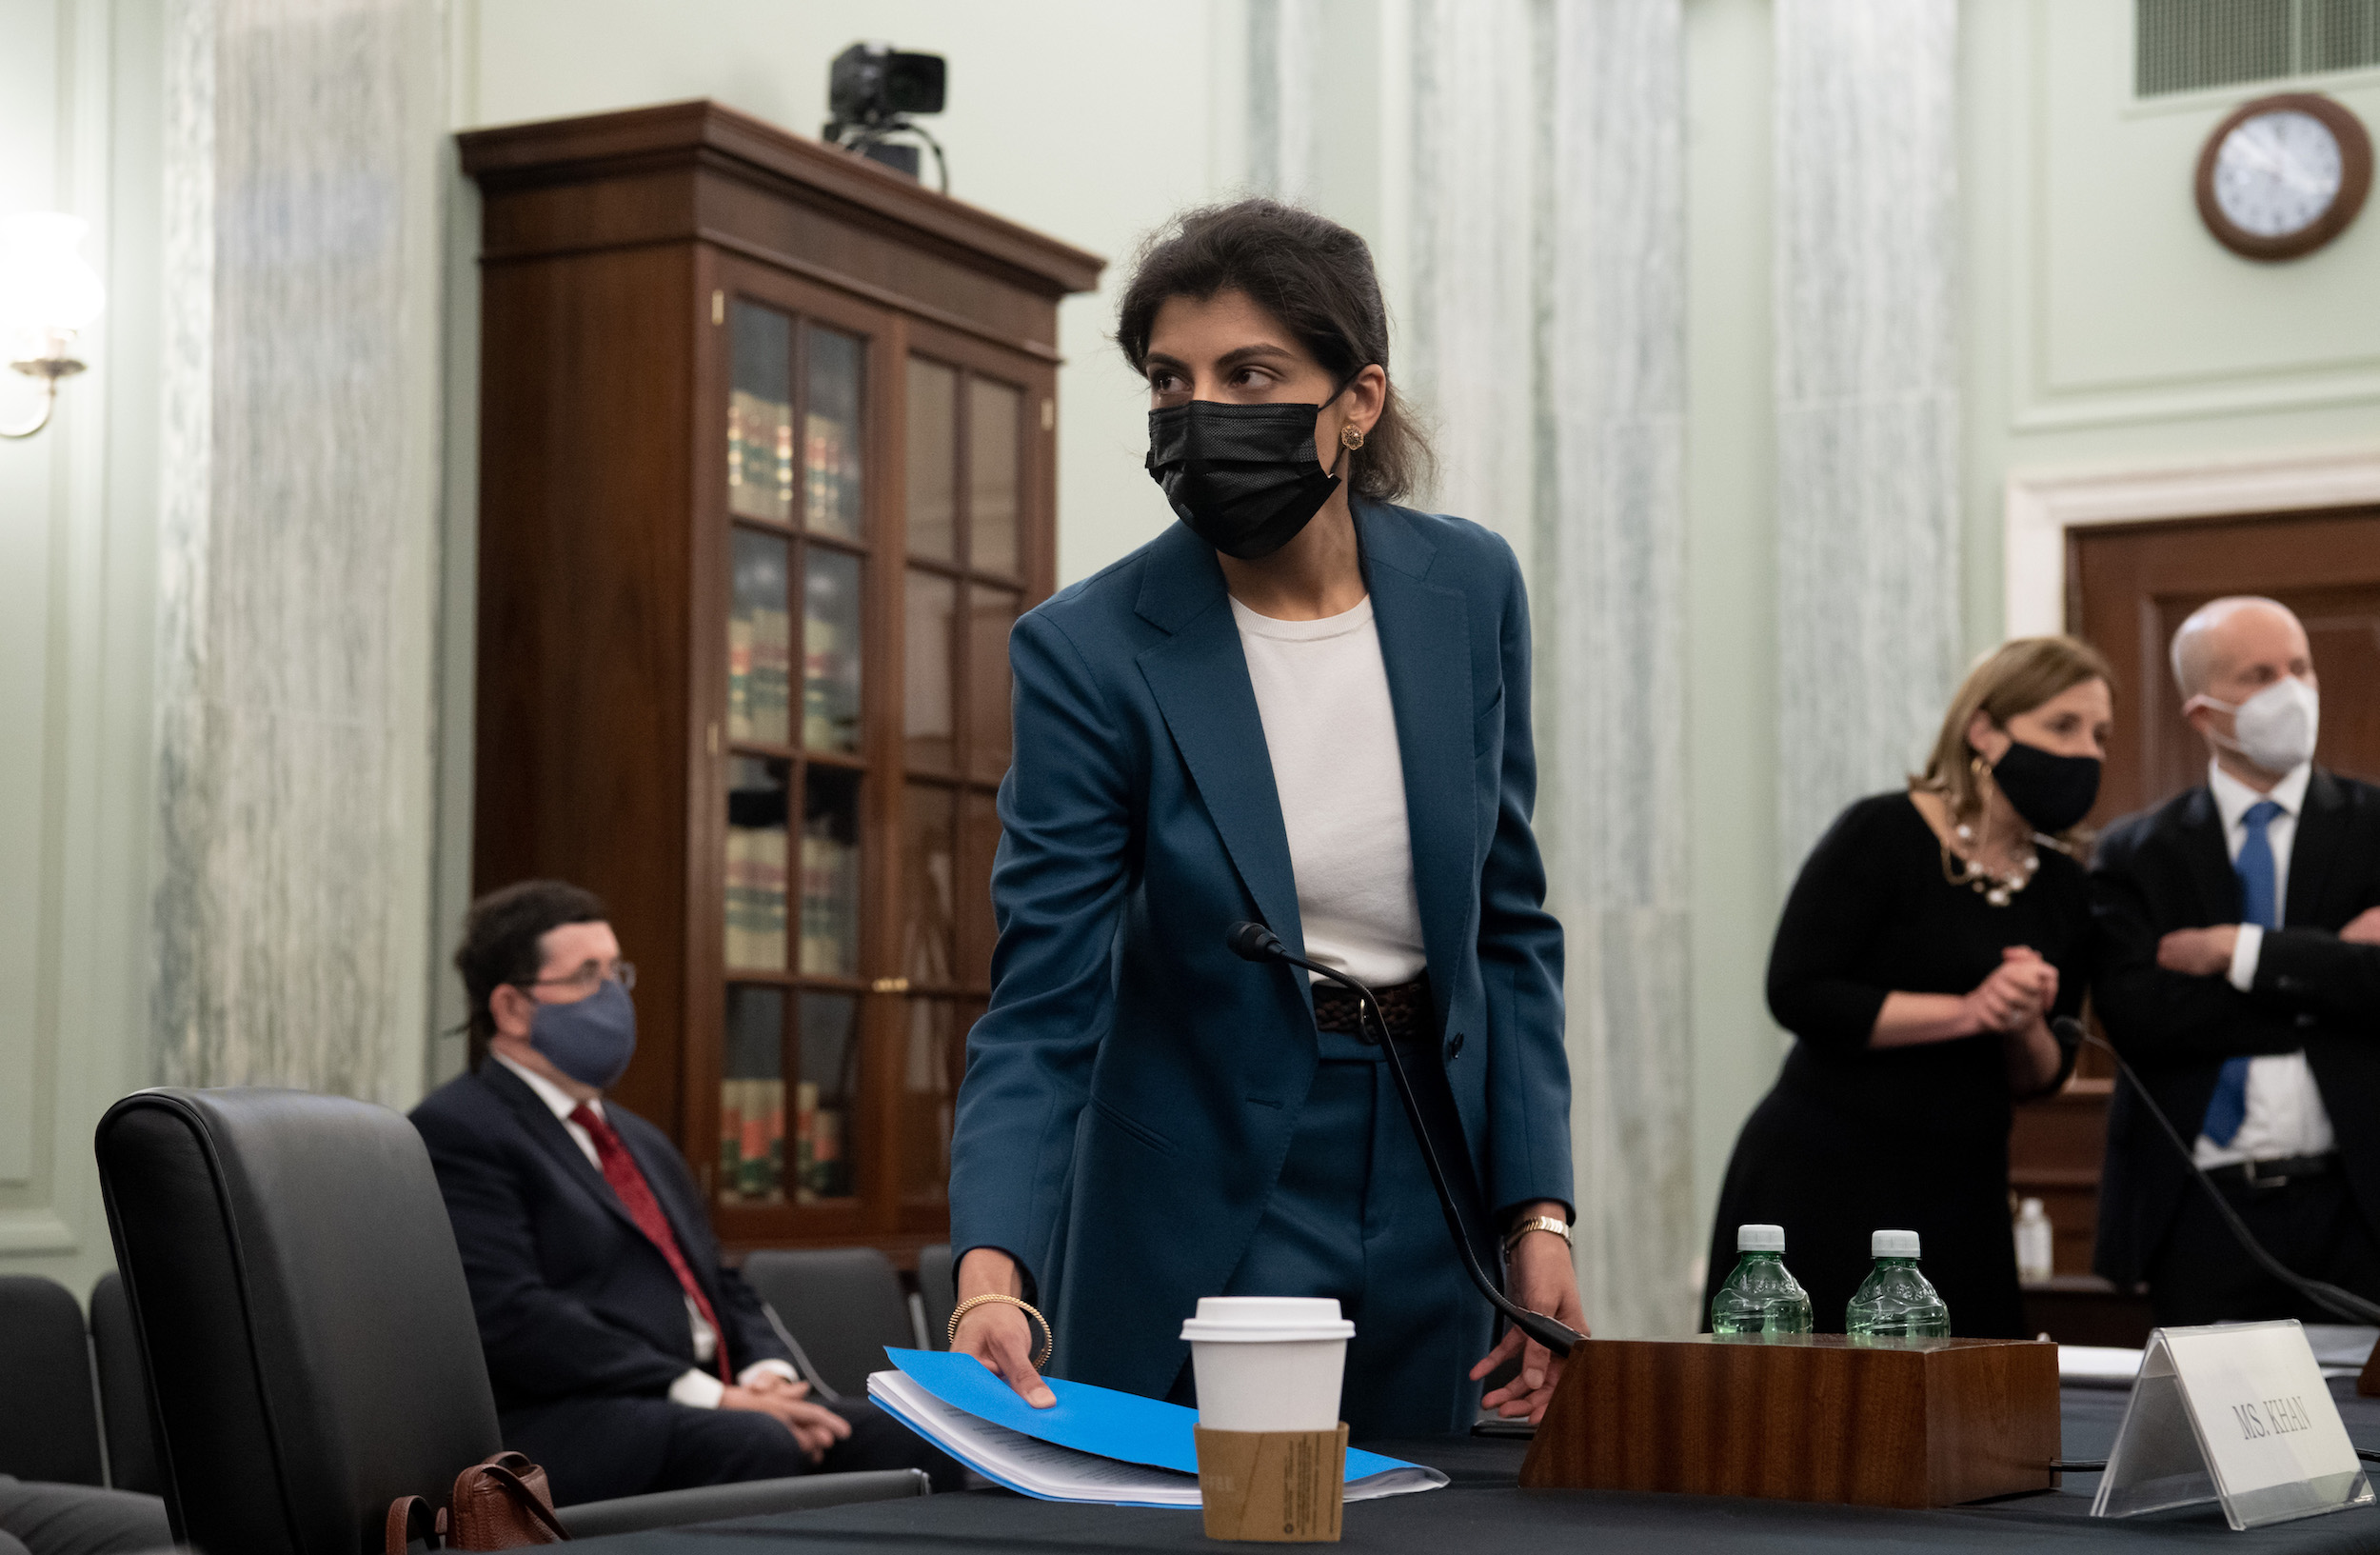 WASHINGTON, DC - APRIL 21: Lina Khan, nominee for Commissioner of the Federal Trade Commission (FTC), arrives at at a Senate Committee on Commerce, Science, and Transportation confirmation hearing on Capitol Hill on April 21, 2021 in Washington, DC. Khan is an Associate Professor at Columbia Law School. (Photo by Saul Loeb-Pool/Getty Images)